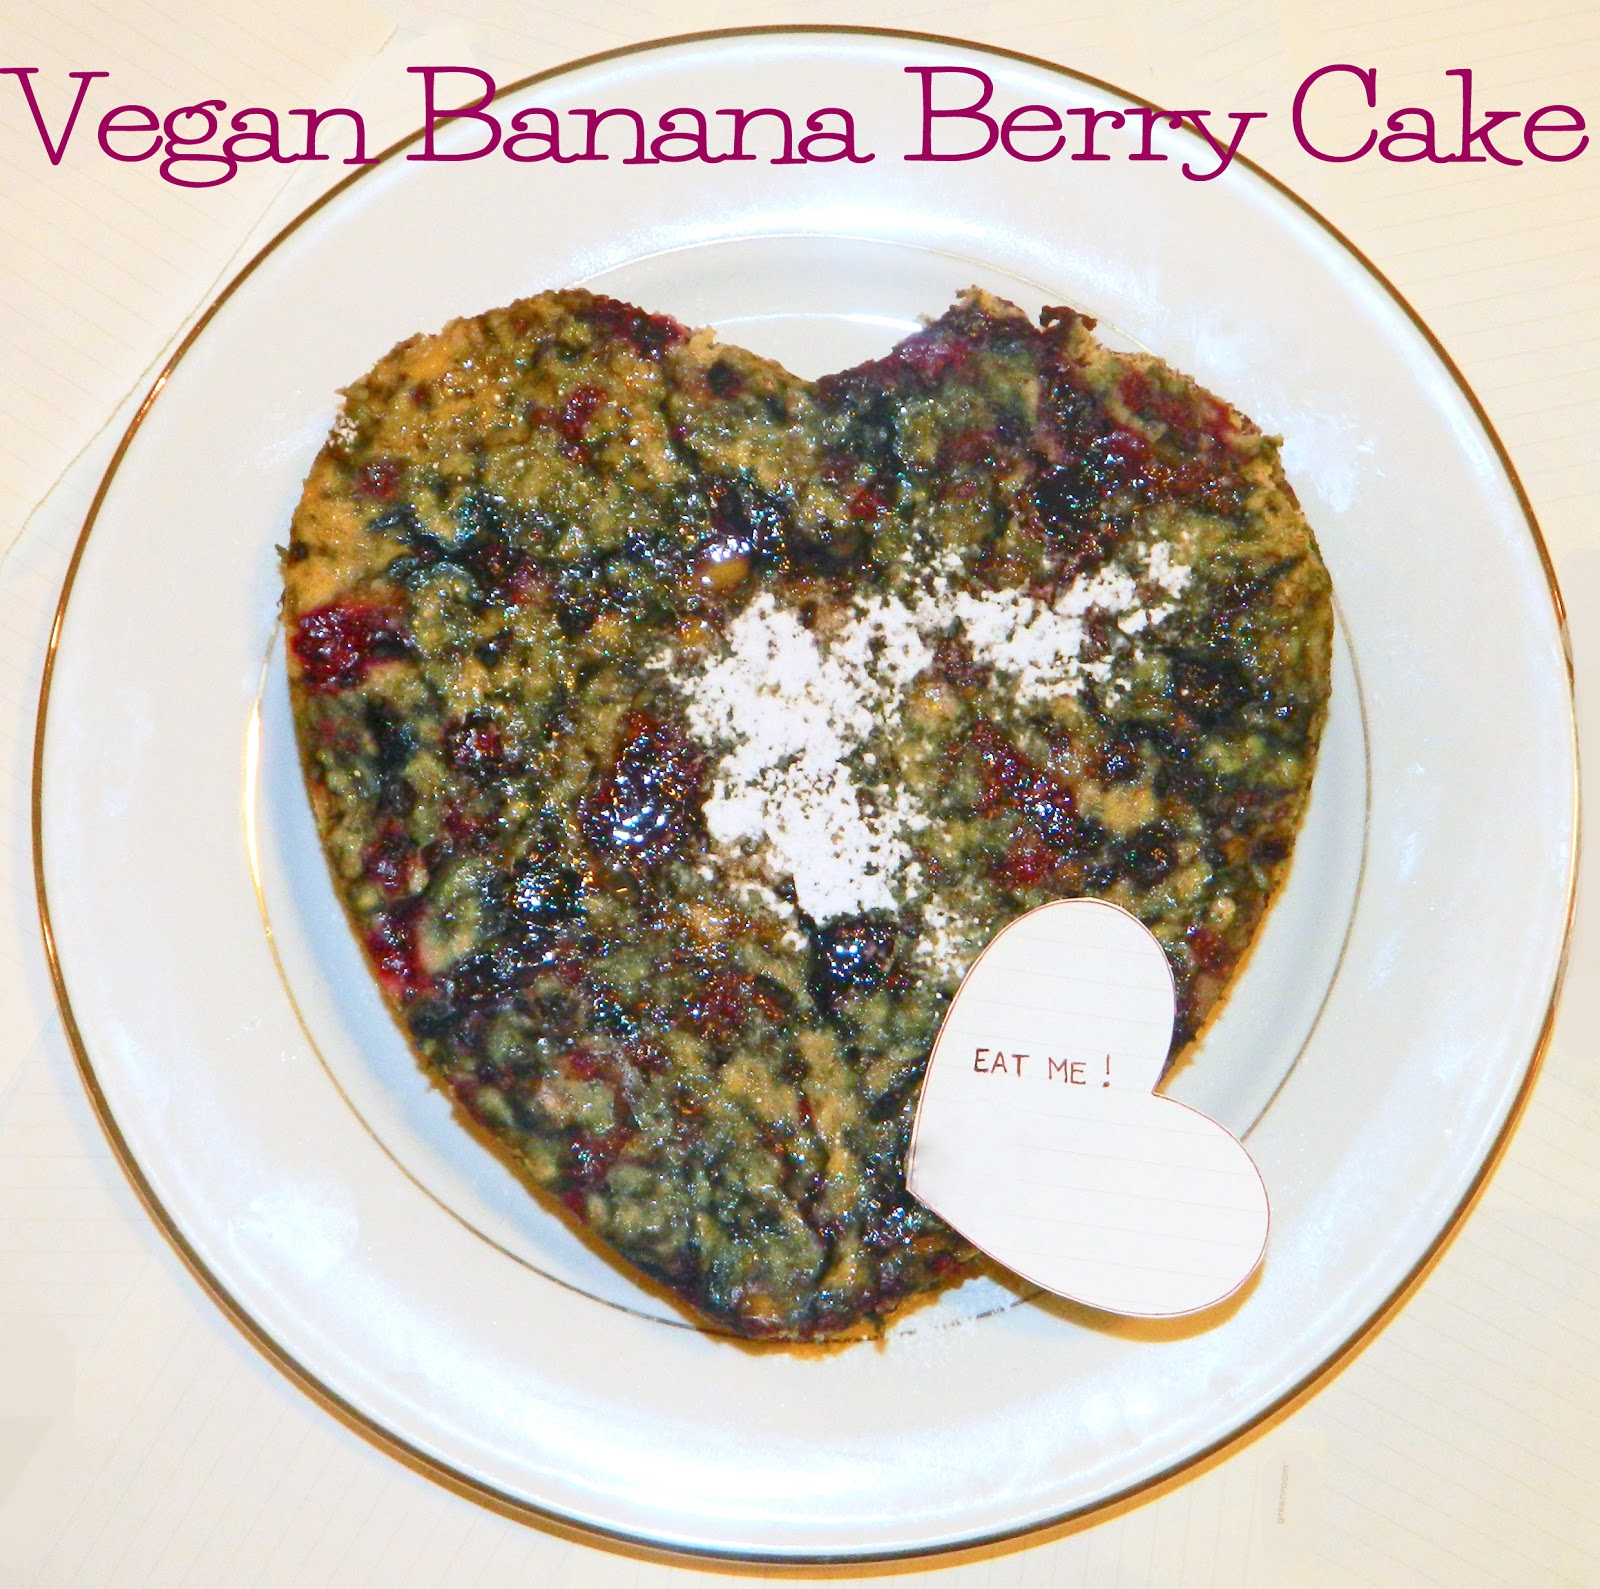 Caravan of Style | Vegan Banana Berry Cake